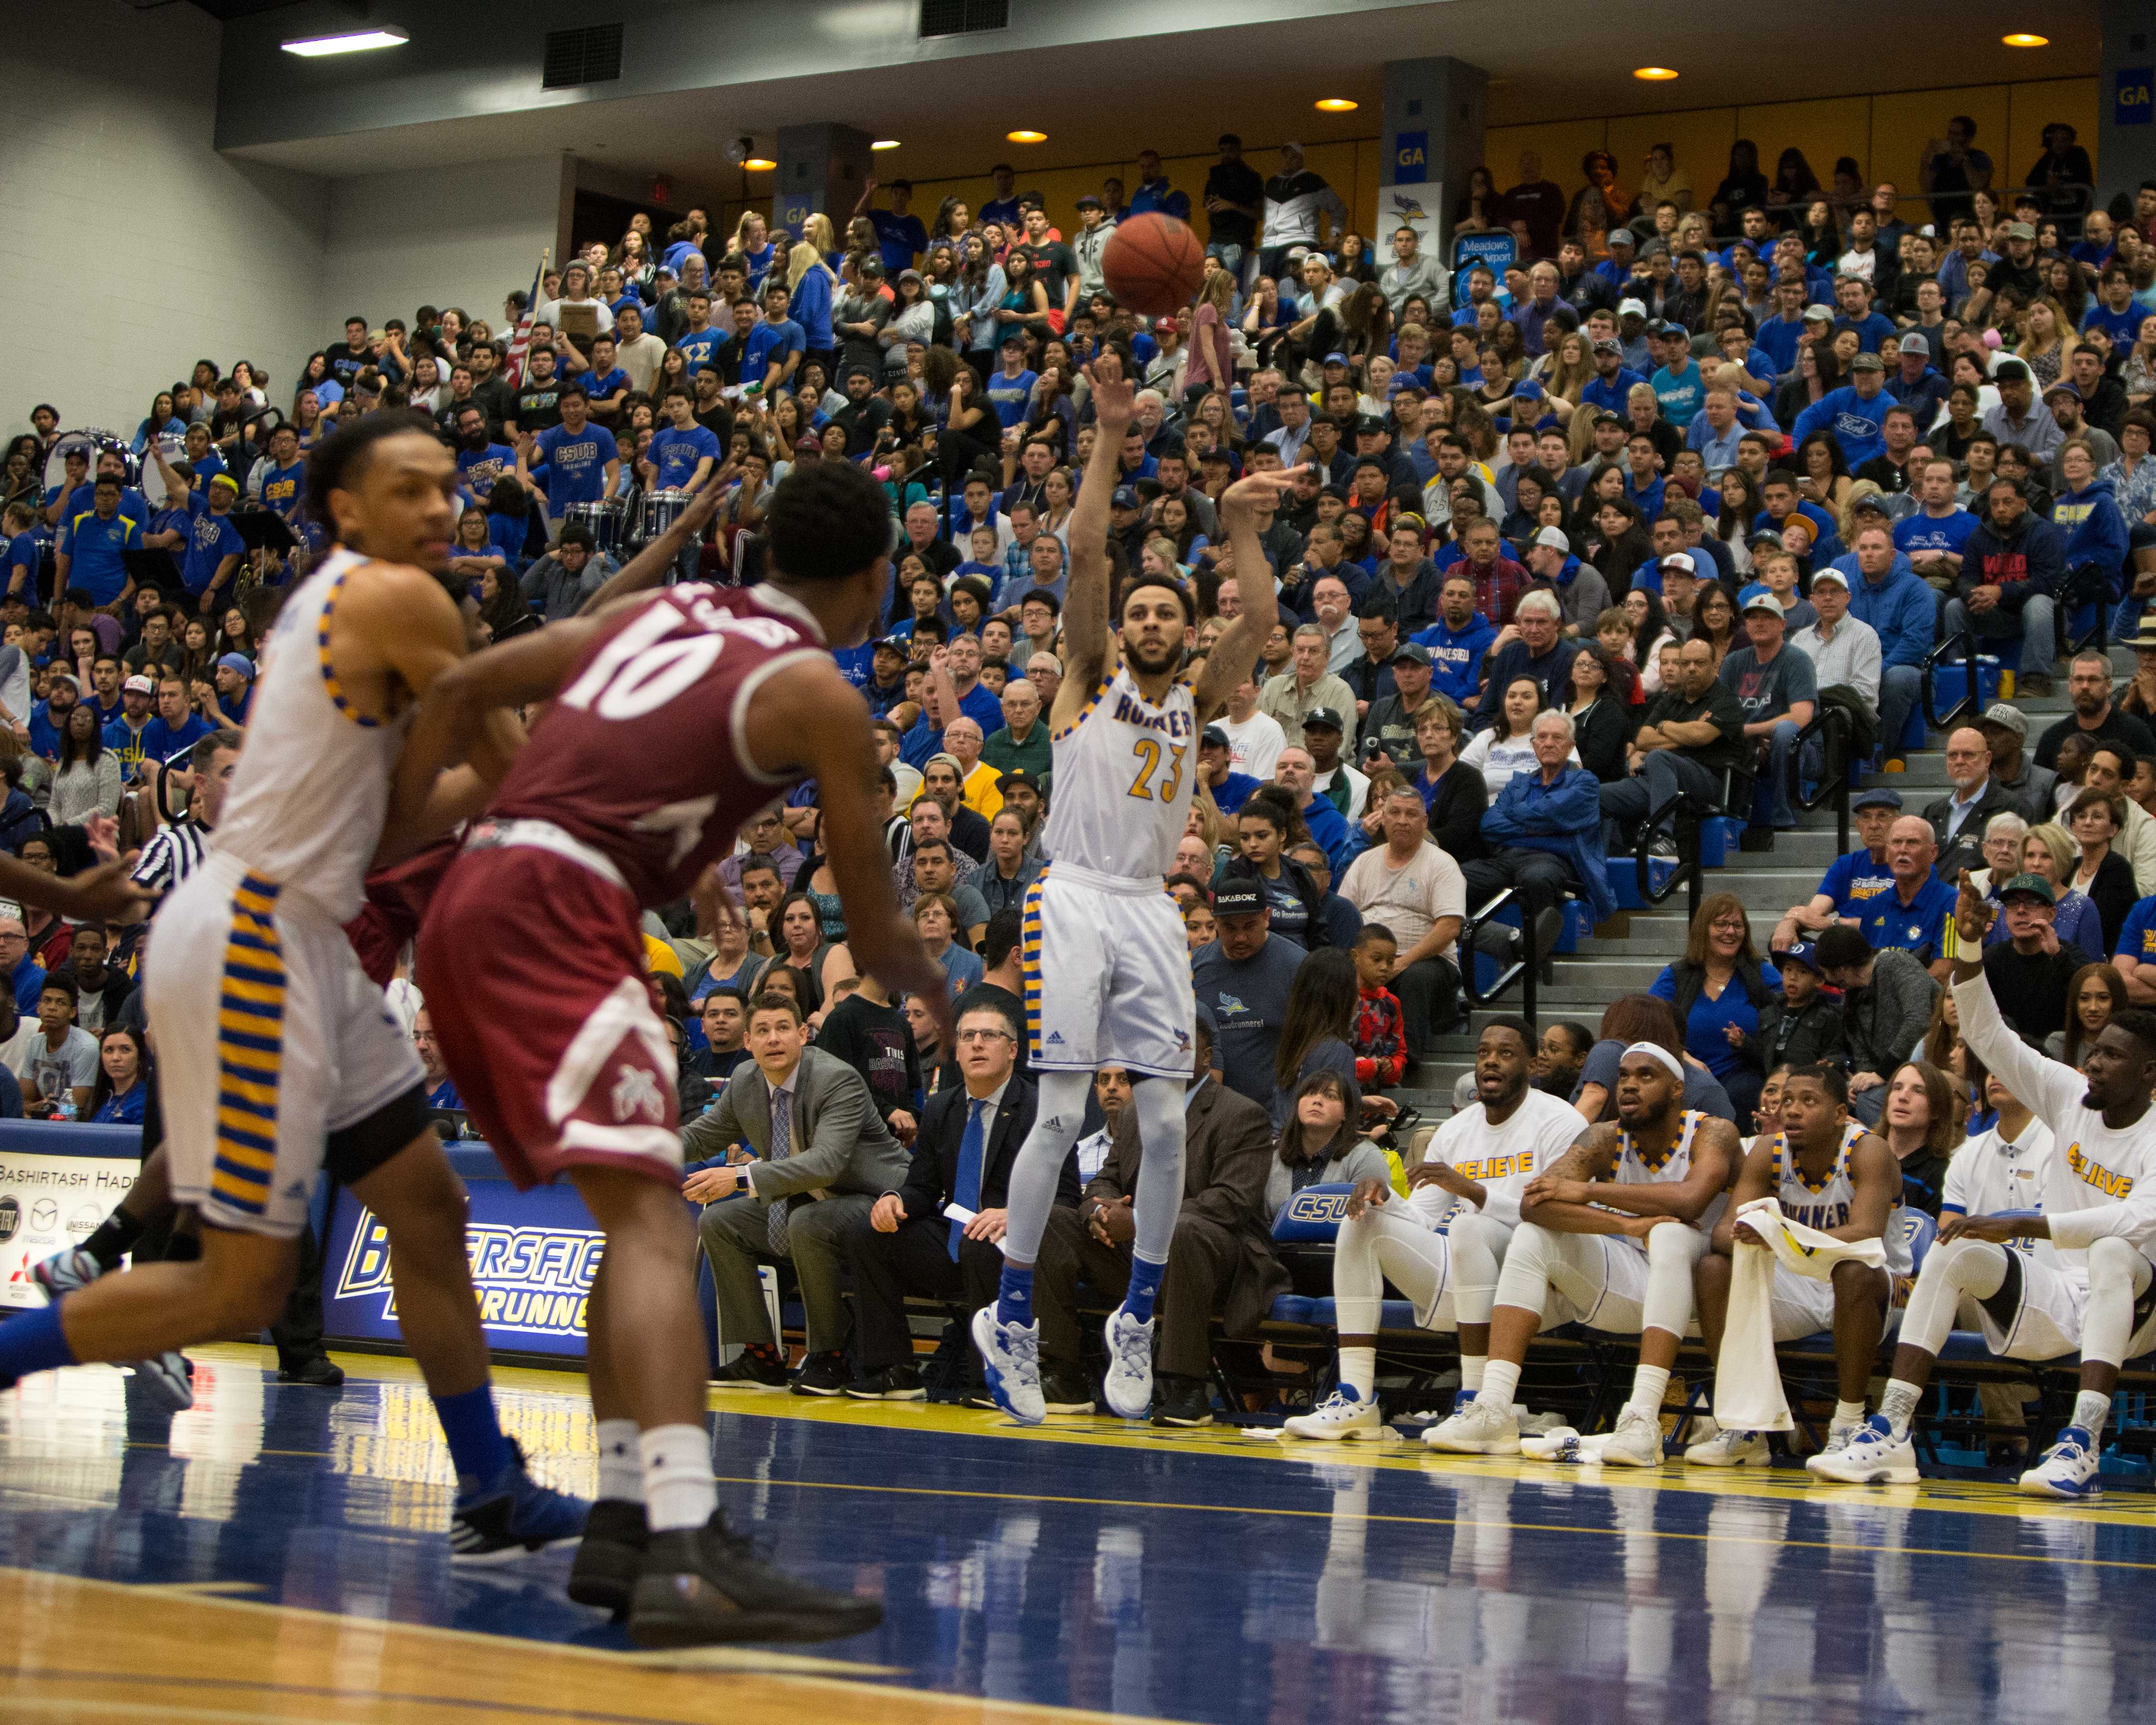 CSUB routs New Mexico State to snap Aggies 20-game win streak